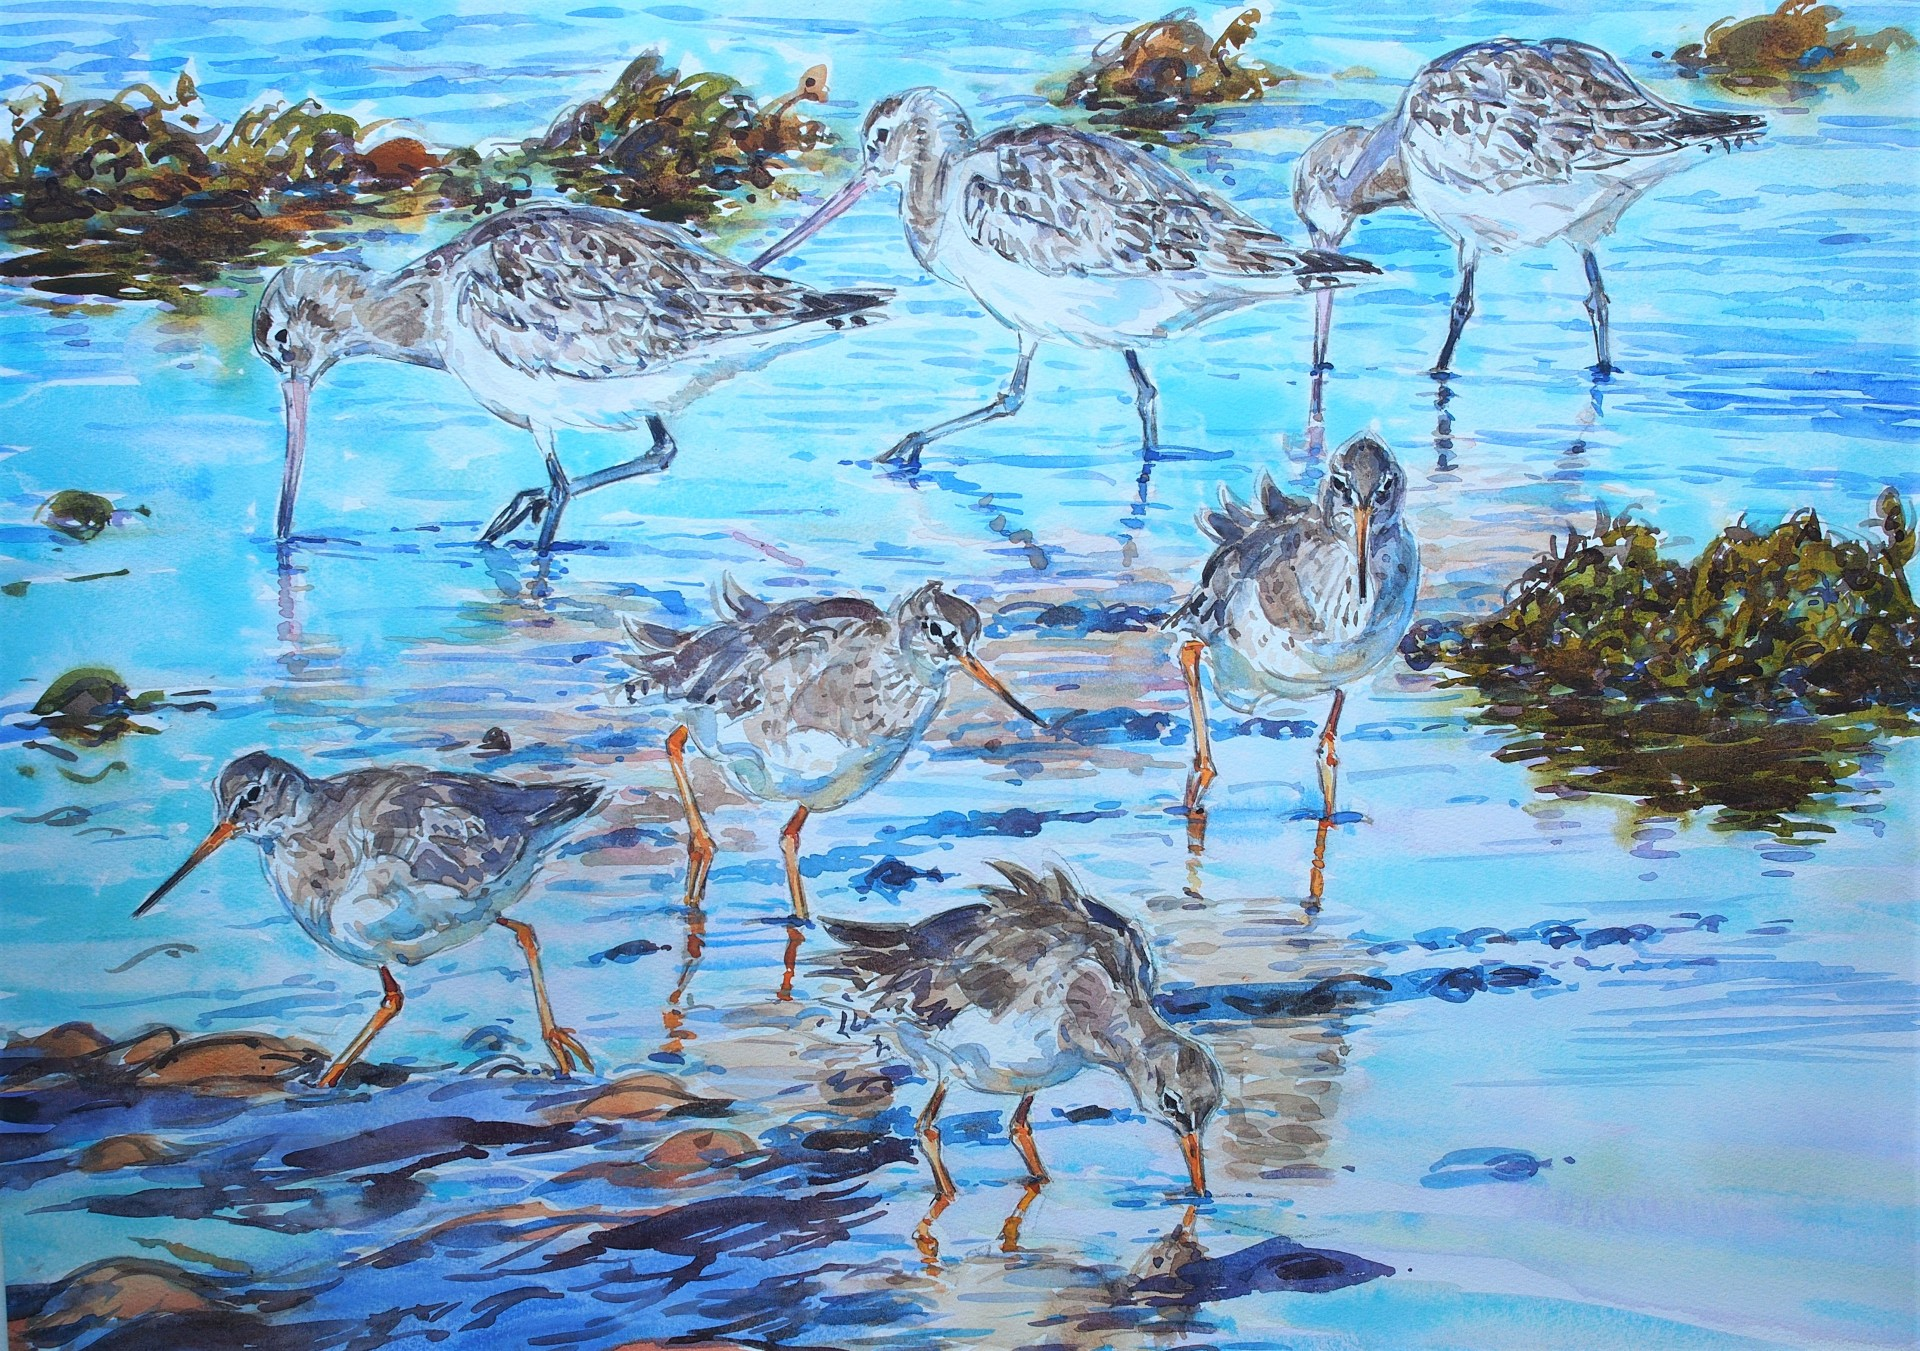 Bar Tailed Godwits and Redshank, Budle Bay, Northumberland